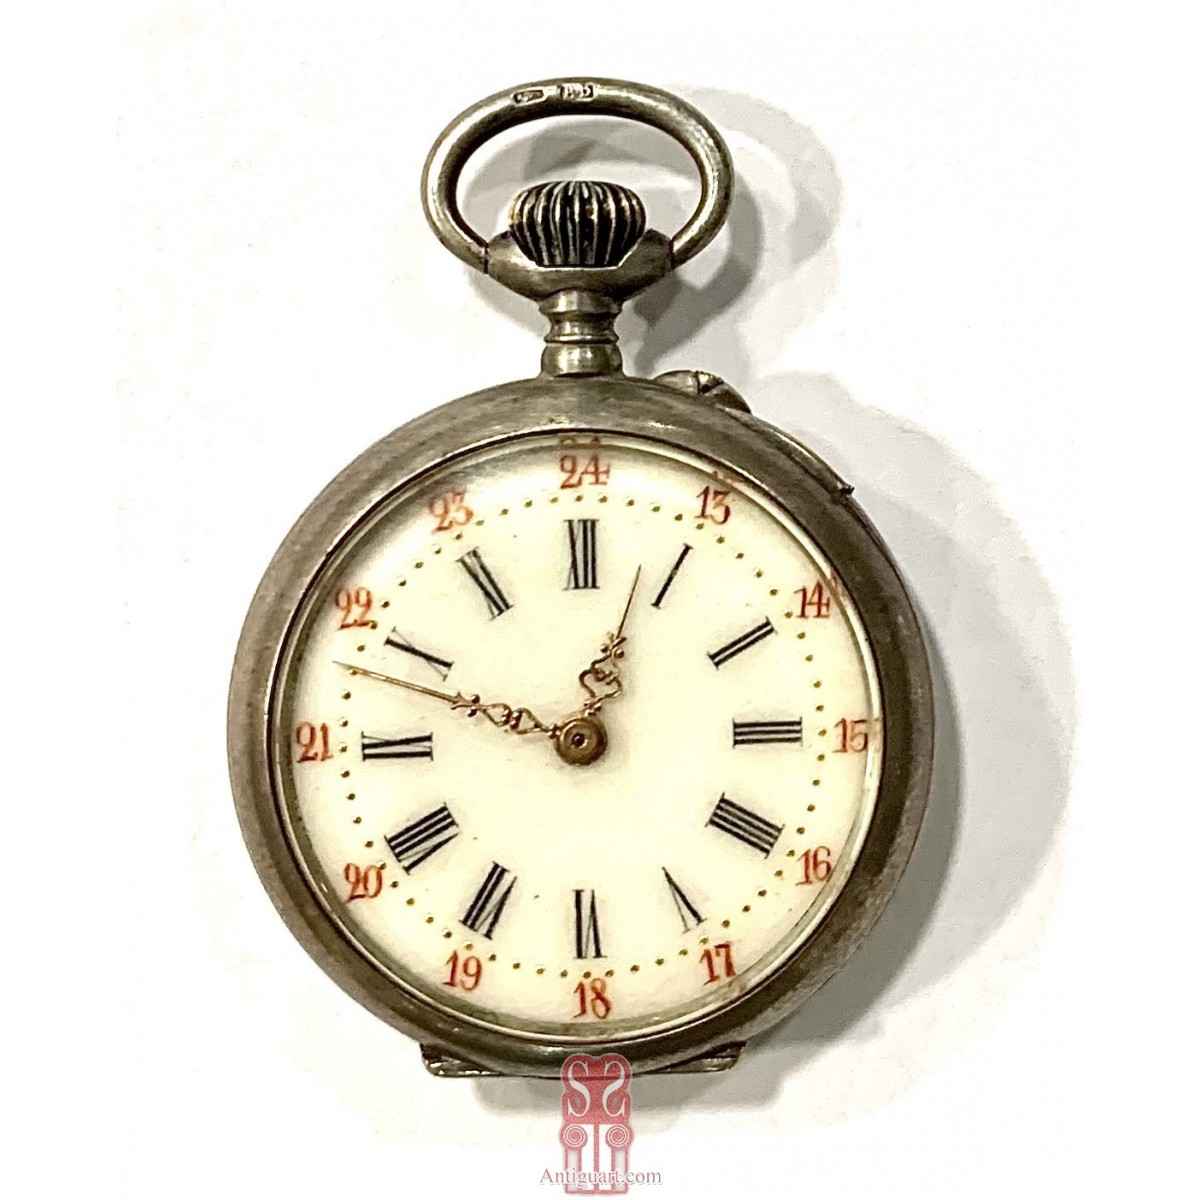 Pocket watch from the late 19th